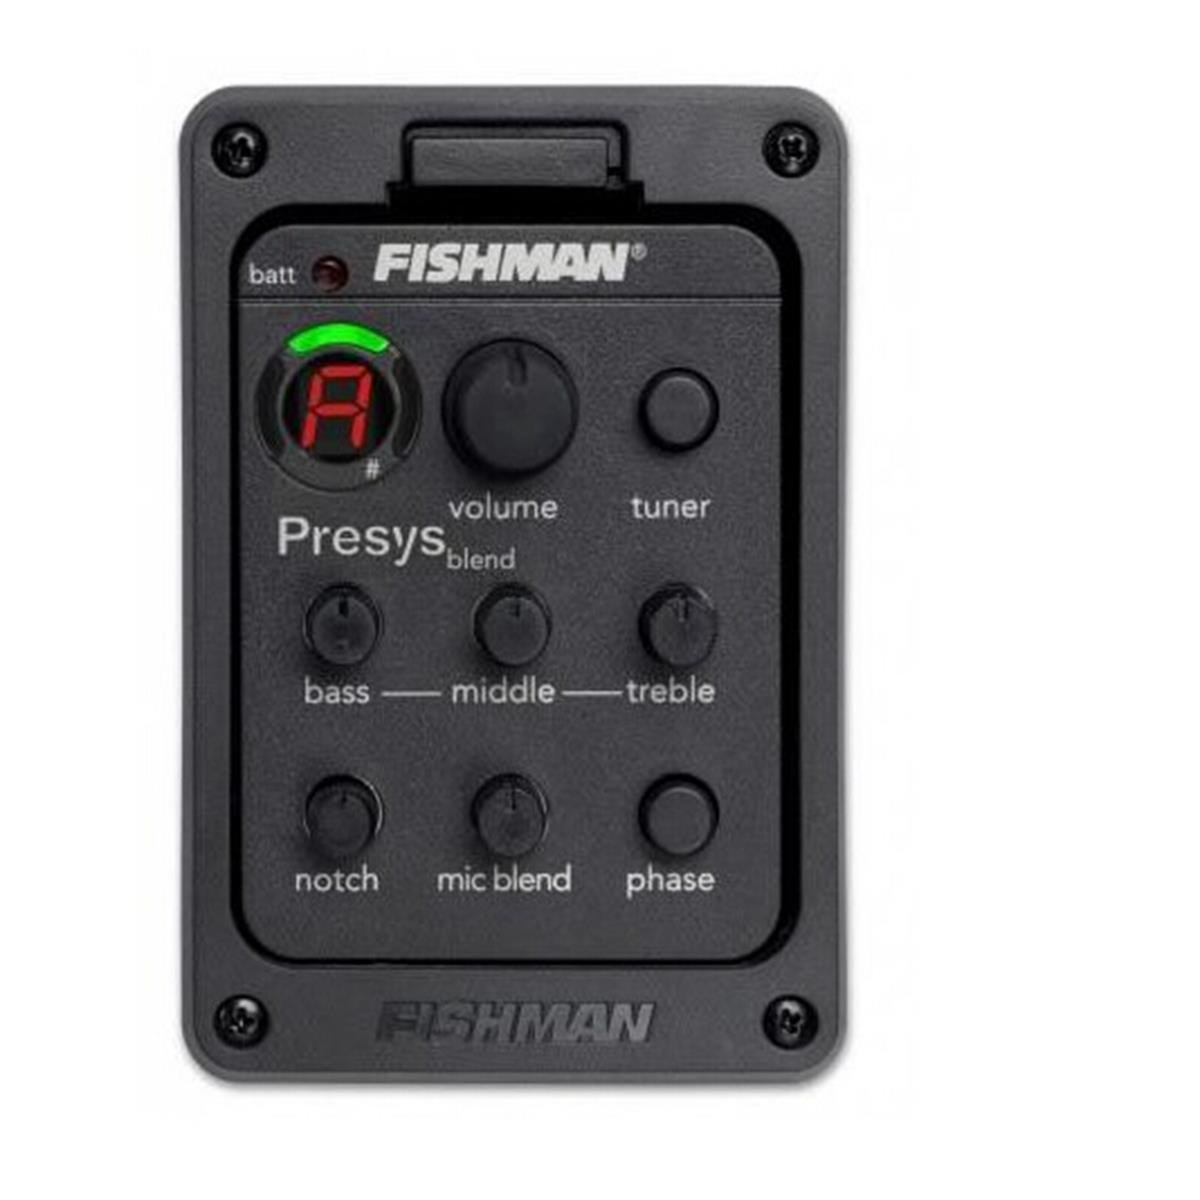 fishman psy 301 guitar pickups preamp eq tuner mic presys blend detail image